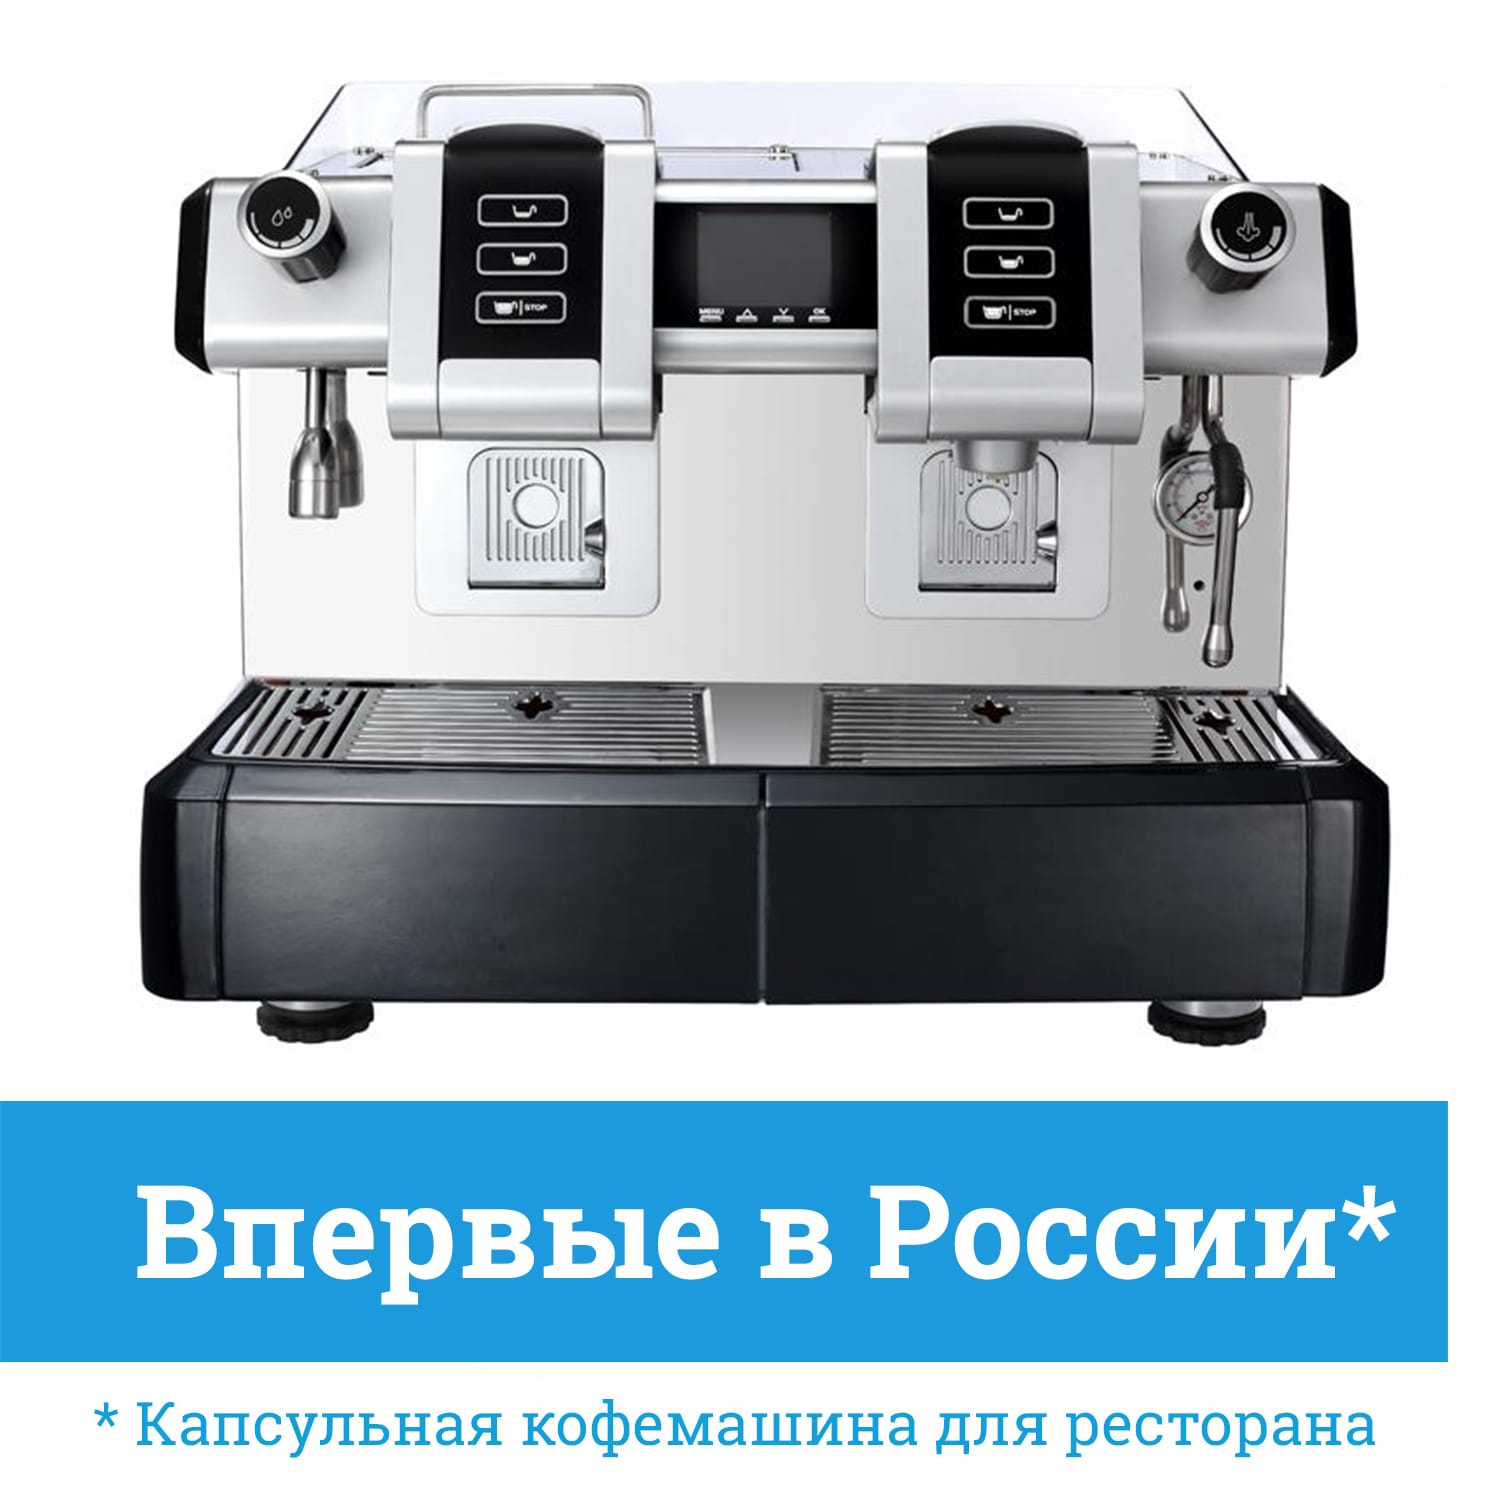 Профессиональная капсульная кофемашина Business Professional системы Nespresso